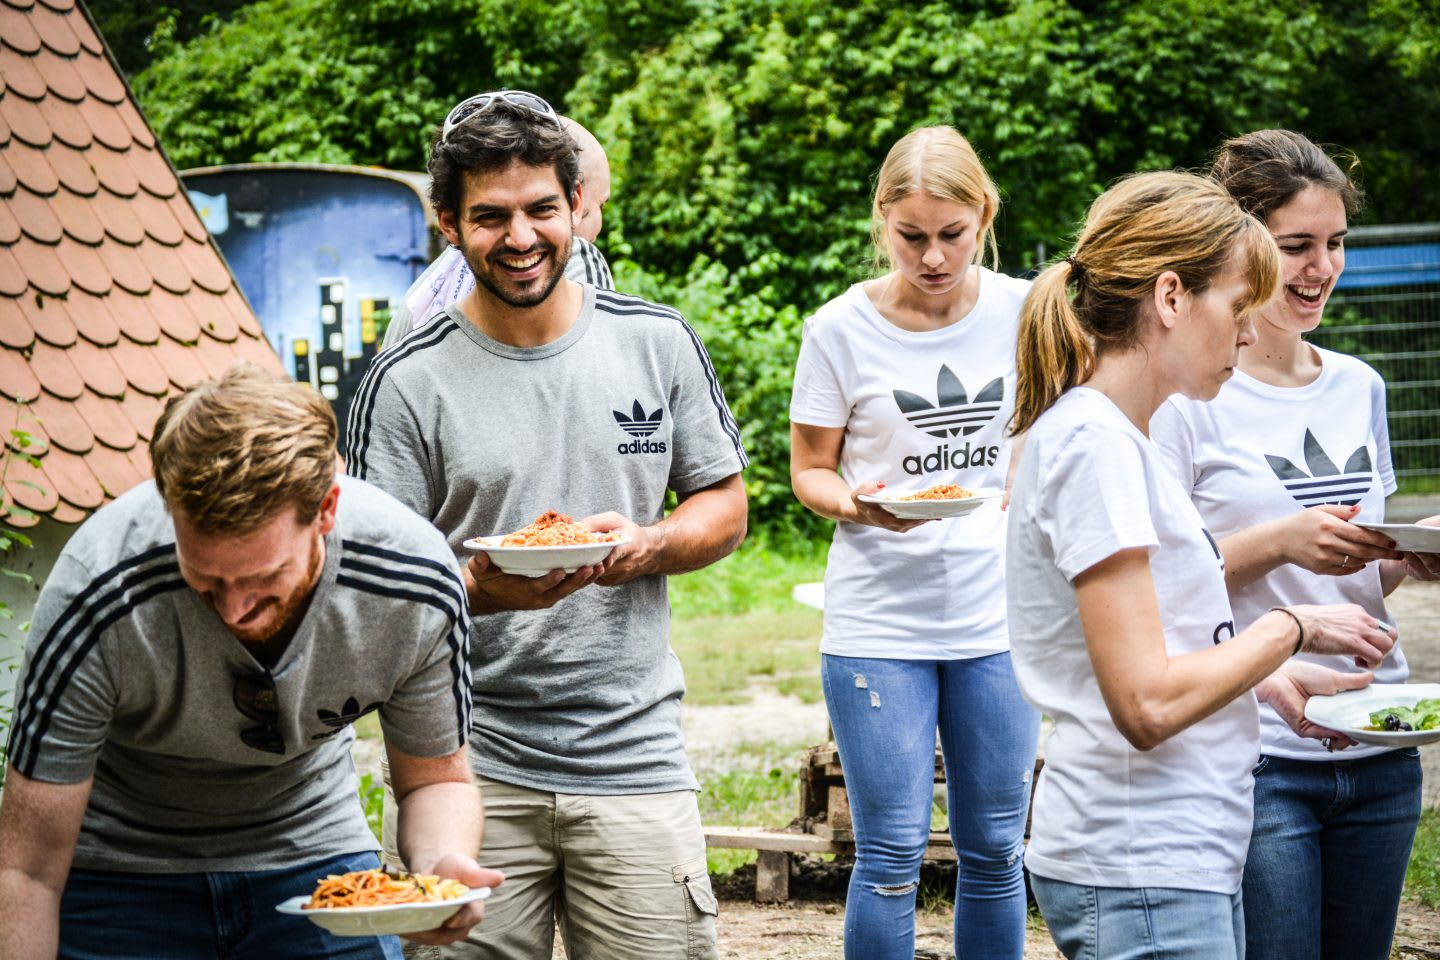 group of people in adidas shirts smile and eat lunch